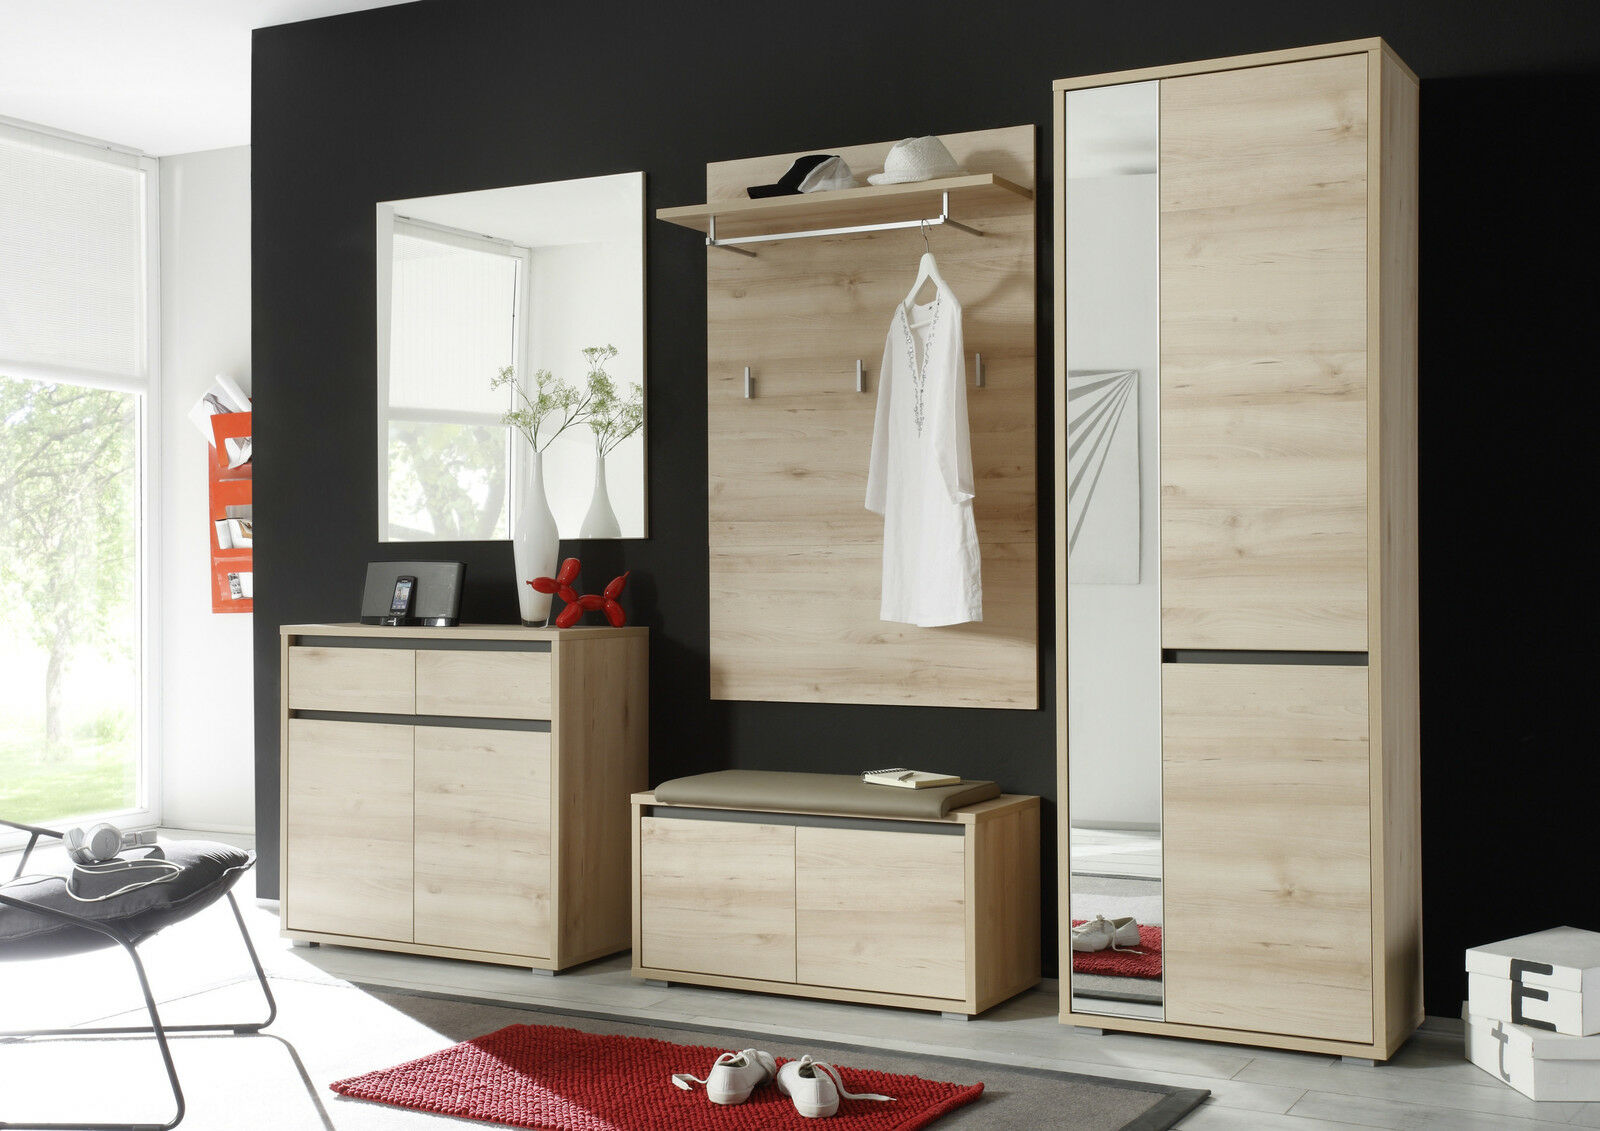 garderoben set edelbuche spiegel paneel schuhschrank schrank bank woody 63 00069 eur 549 00. Black Bedroom Furniture Sets. Home Design Ideas